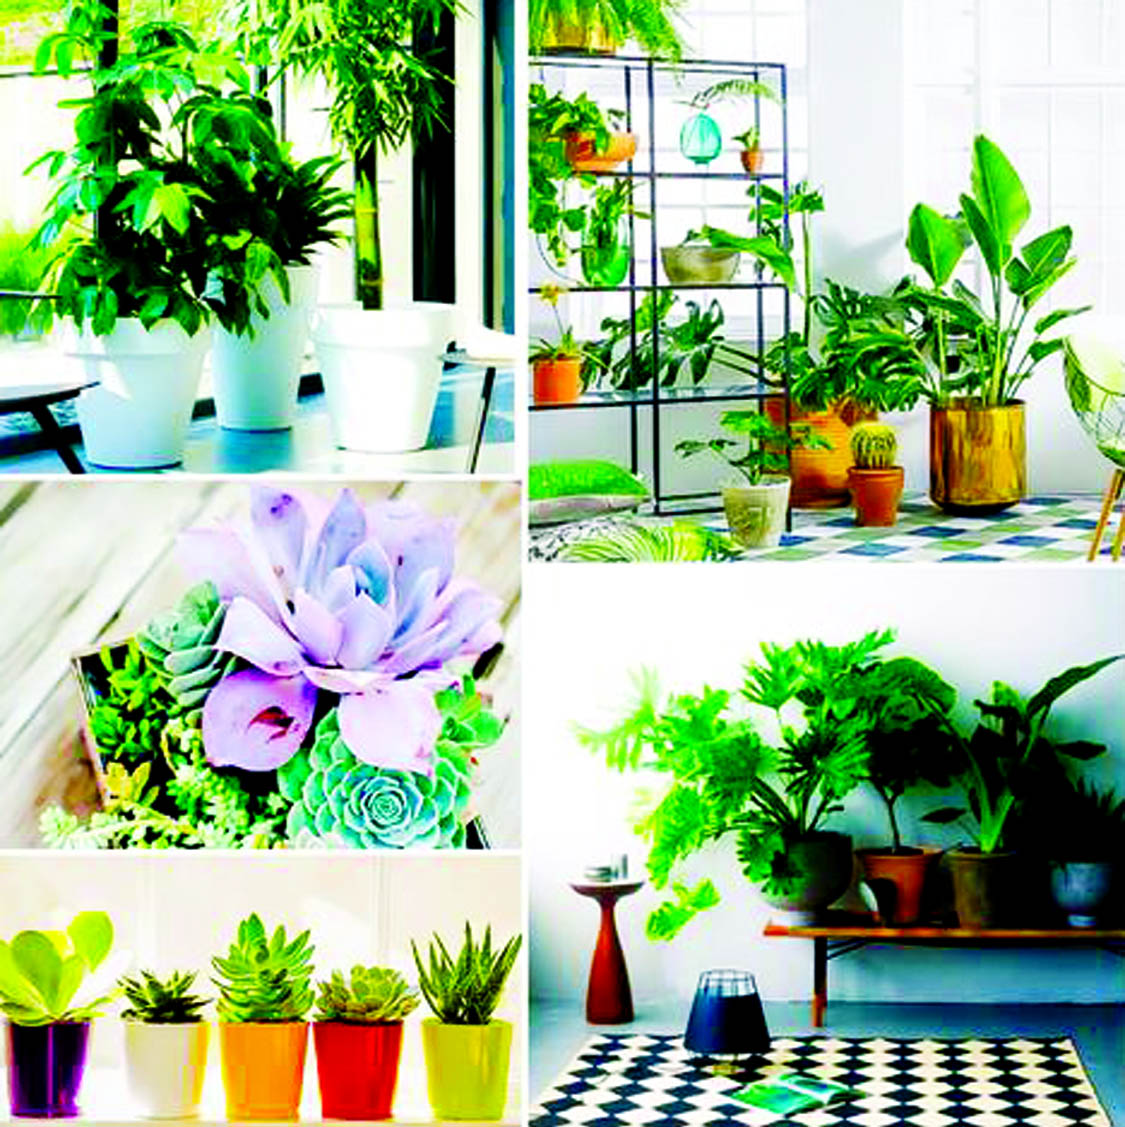 Fill in all those empty corners in your home with decorative pieces, bright colours, lamps and greenery. This would add a positive vibe your home and enhance the look of it. Opt for the colours that complement each other and provide an exuberant aura to your home